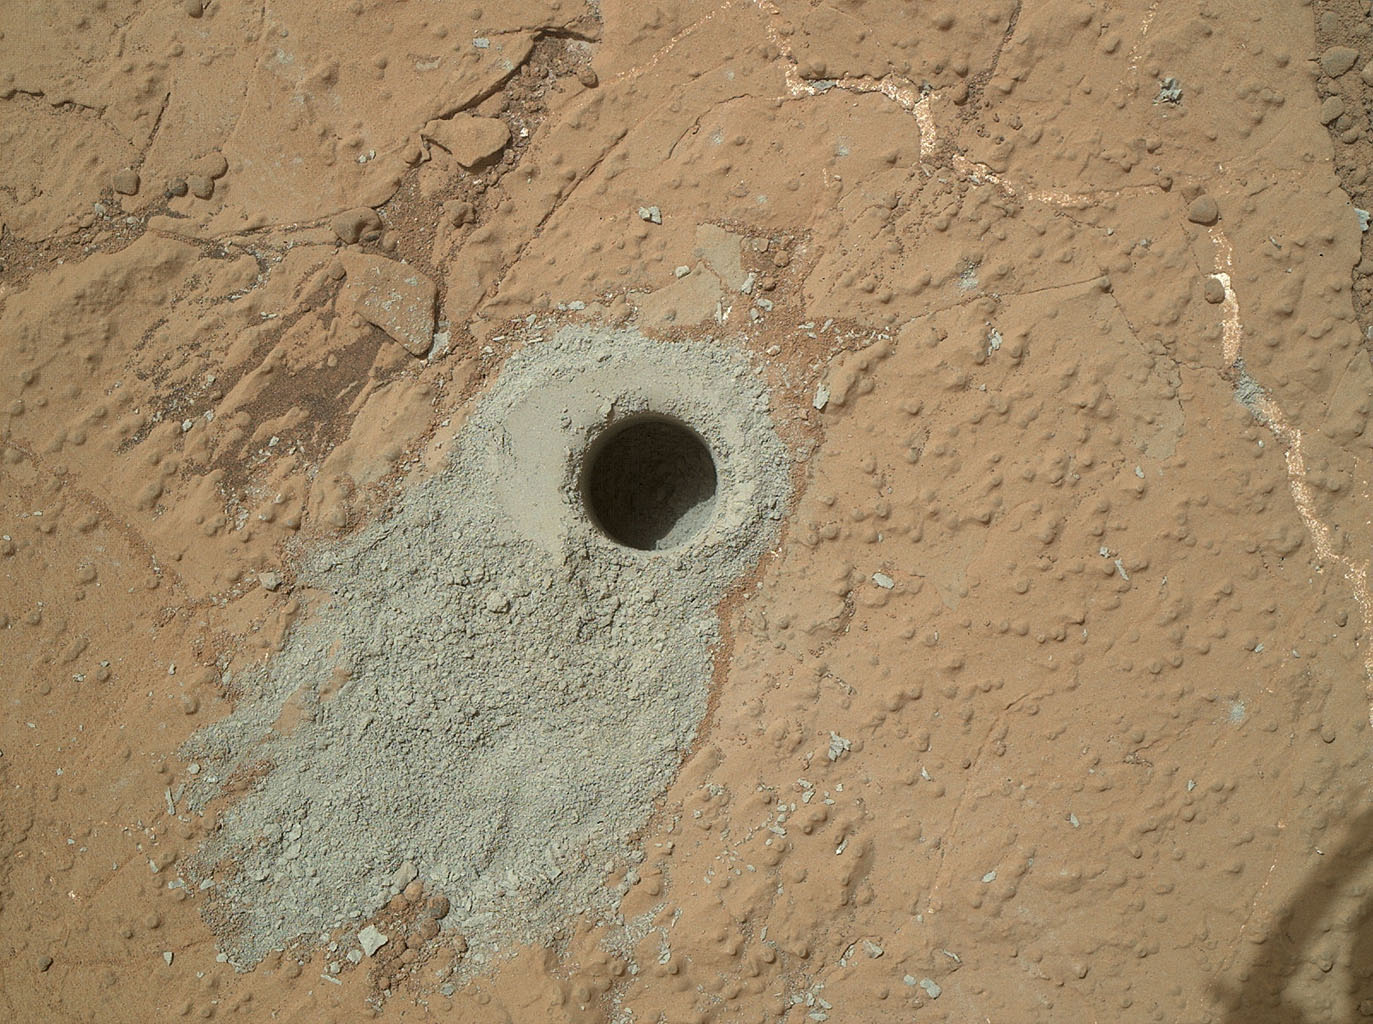 Space Images | 'Cumberland' Target Drilled by Curiosity